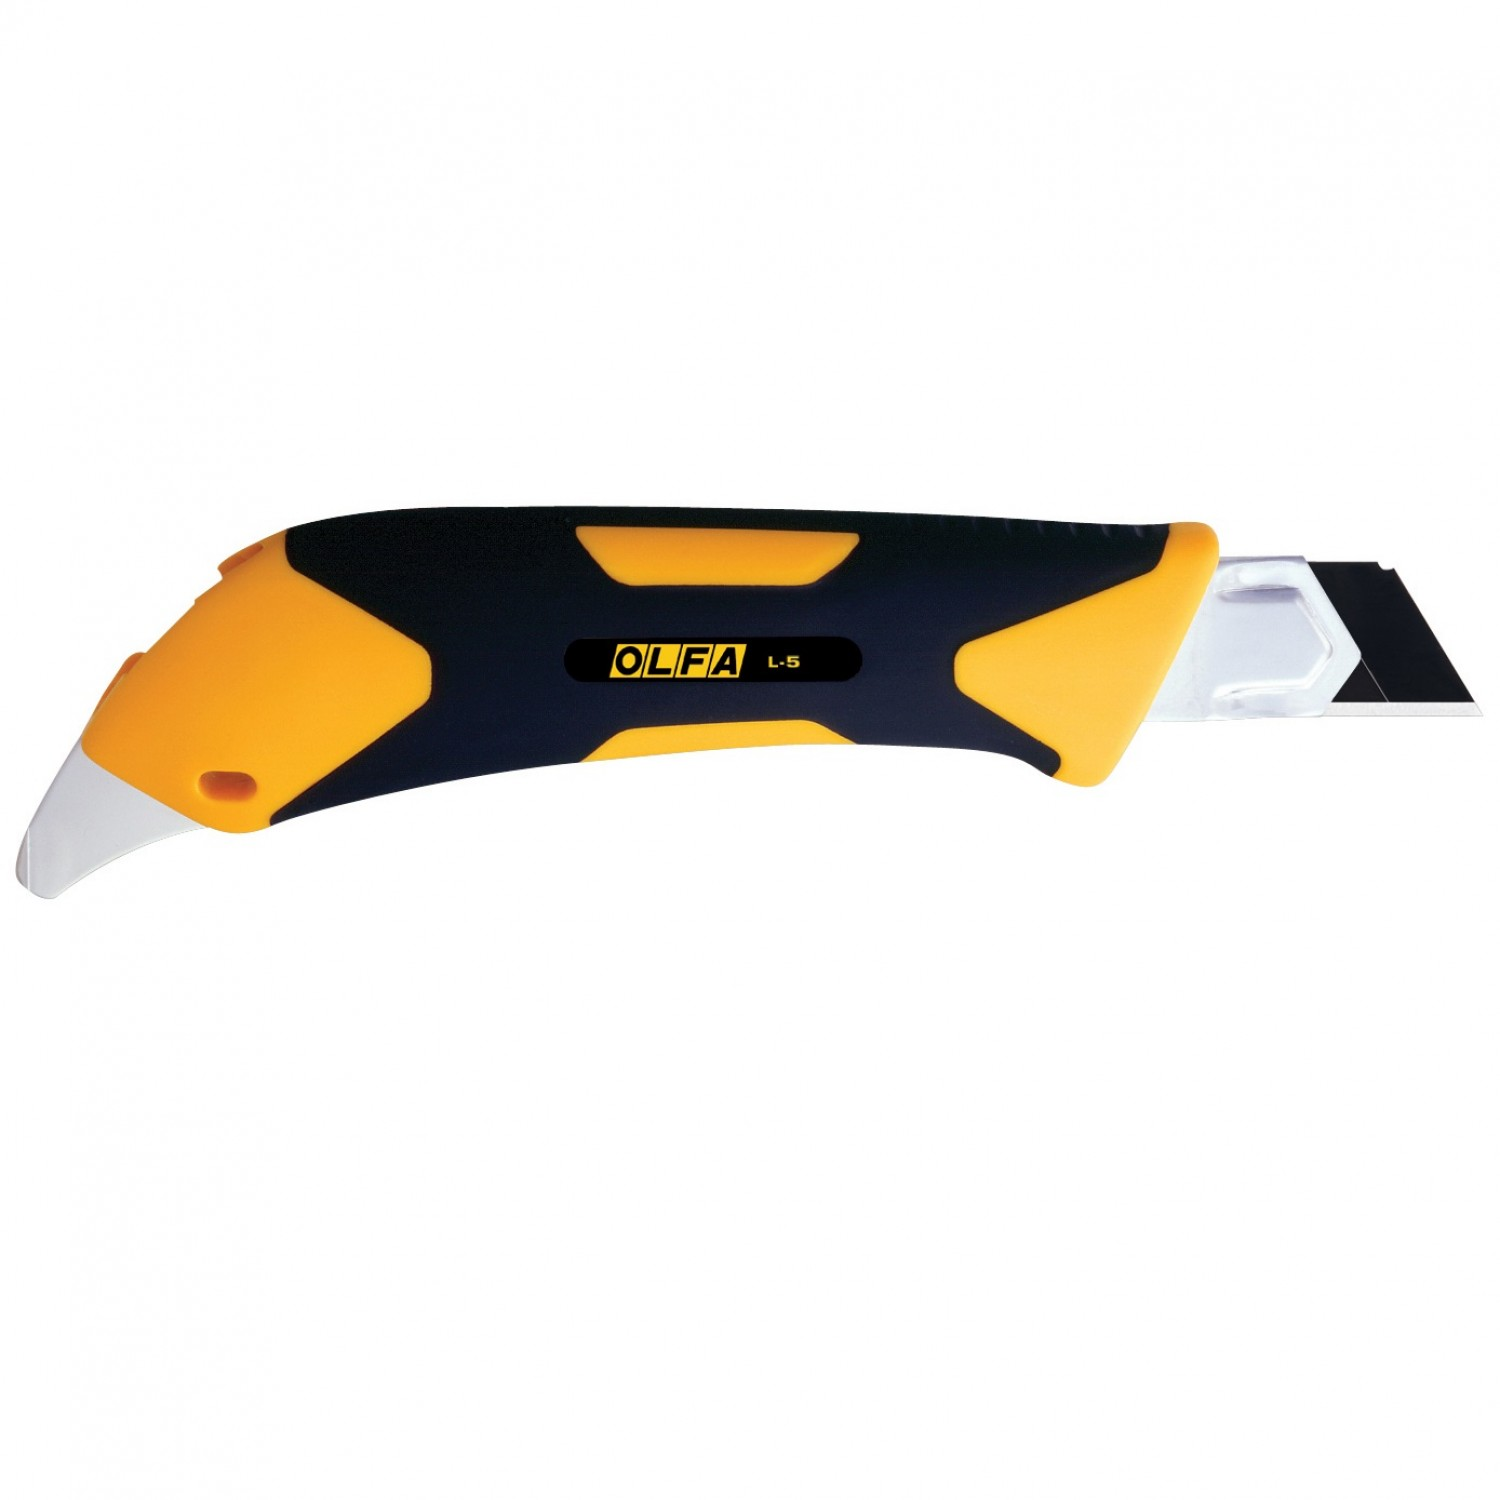 Olfa L-5 Fiberglass Rubber Grip Utility Knife, 18mm Back